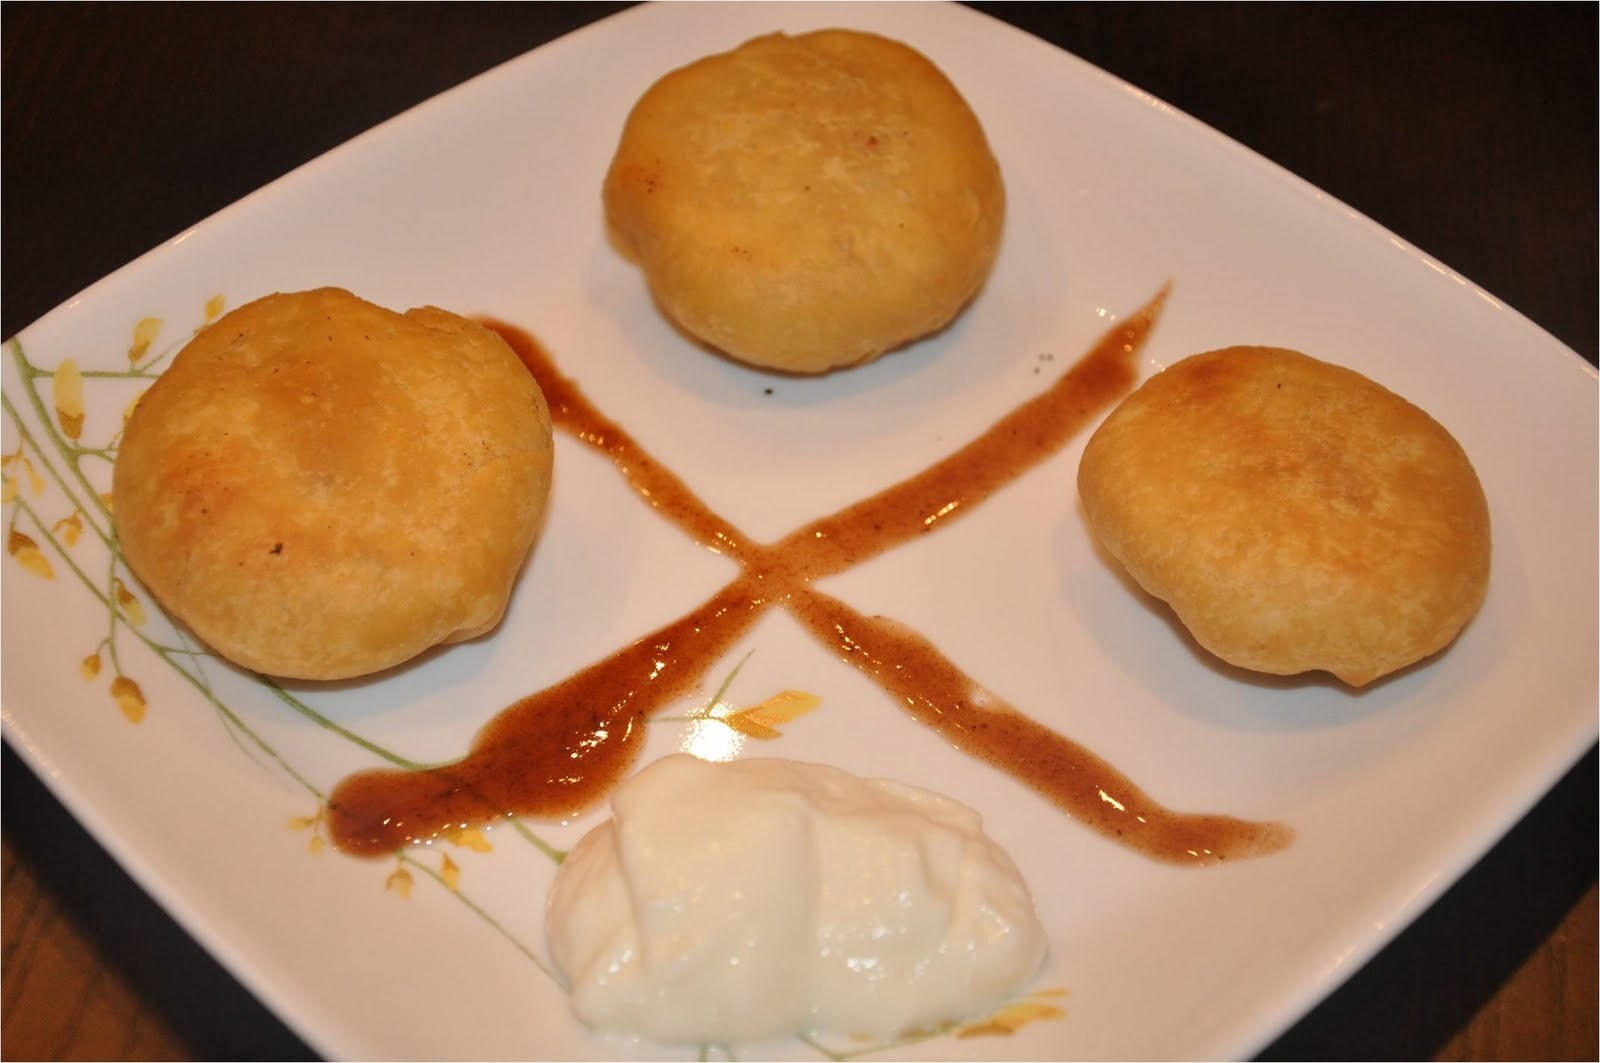 Pyaaz Ki Kachori - प्याज की कचोरी (Onion Filled and Fried All Purpose Flour Balls) and An Award